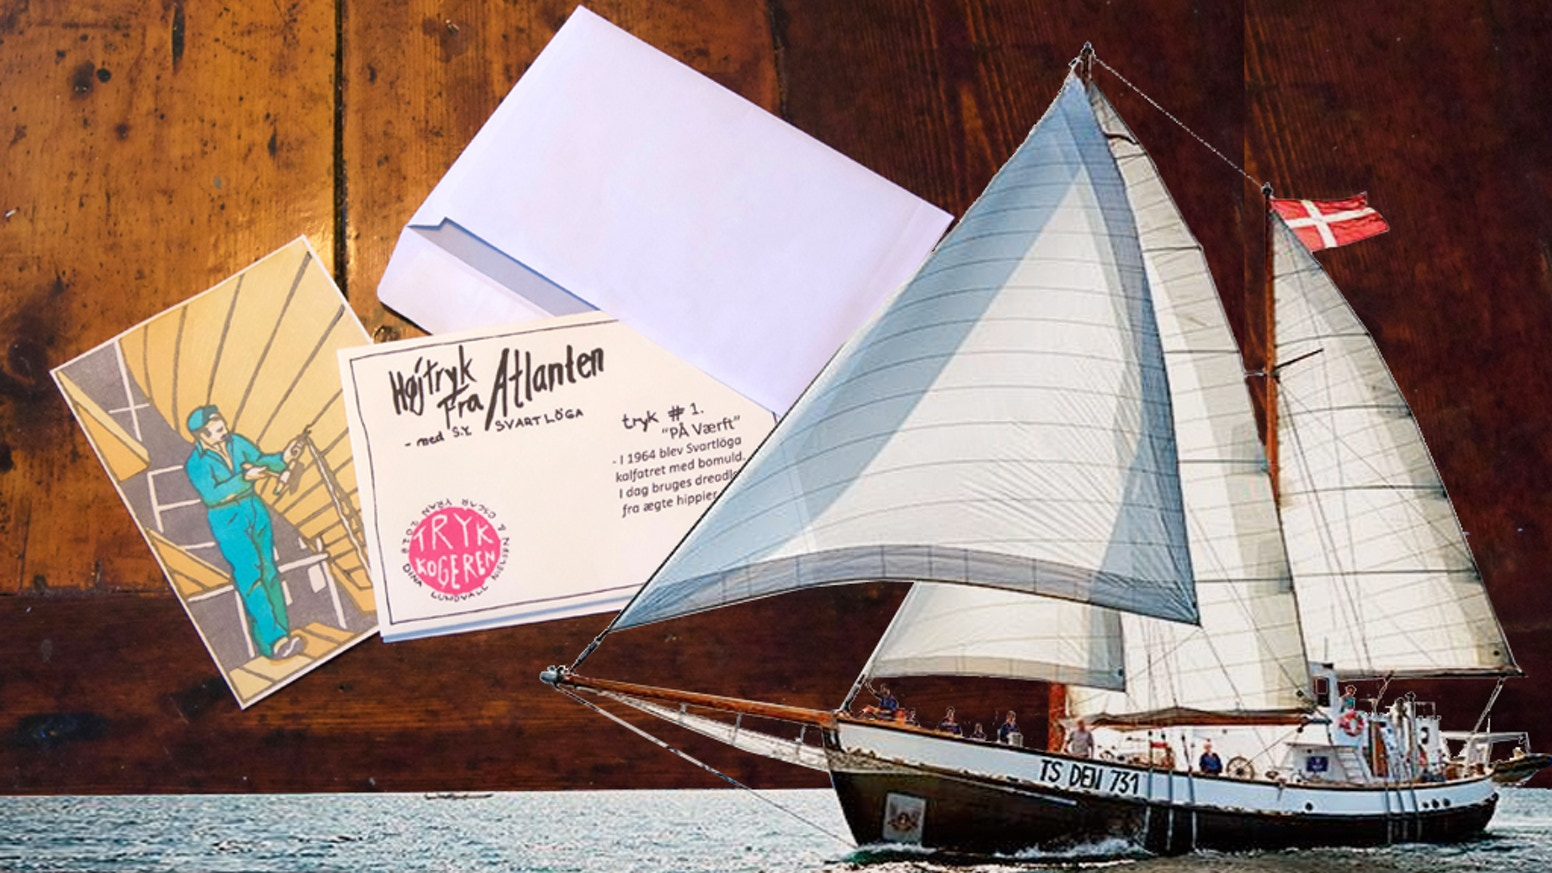 Making original woodblock prints, while sailing From Århus to Tobago,  onboard the amazing s/y Svartloga.